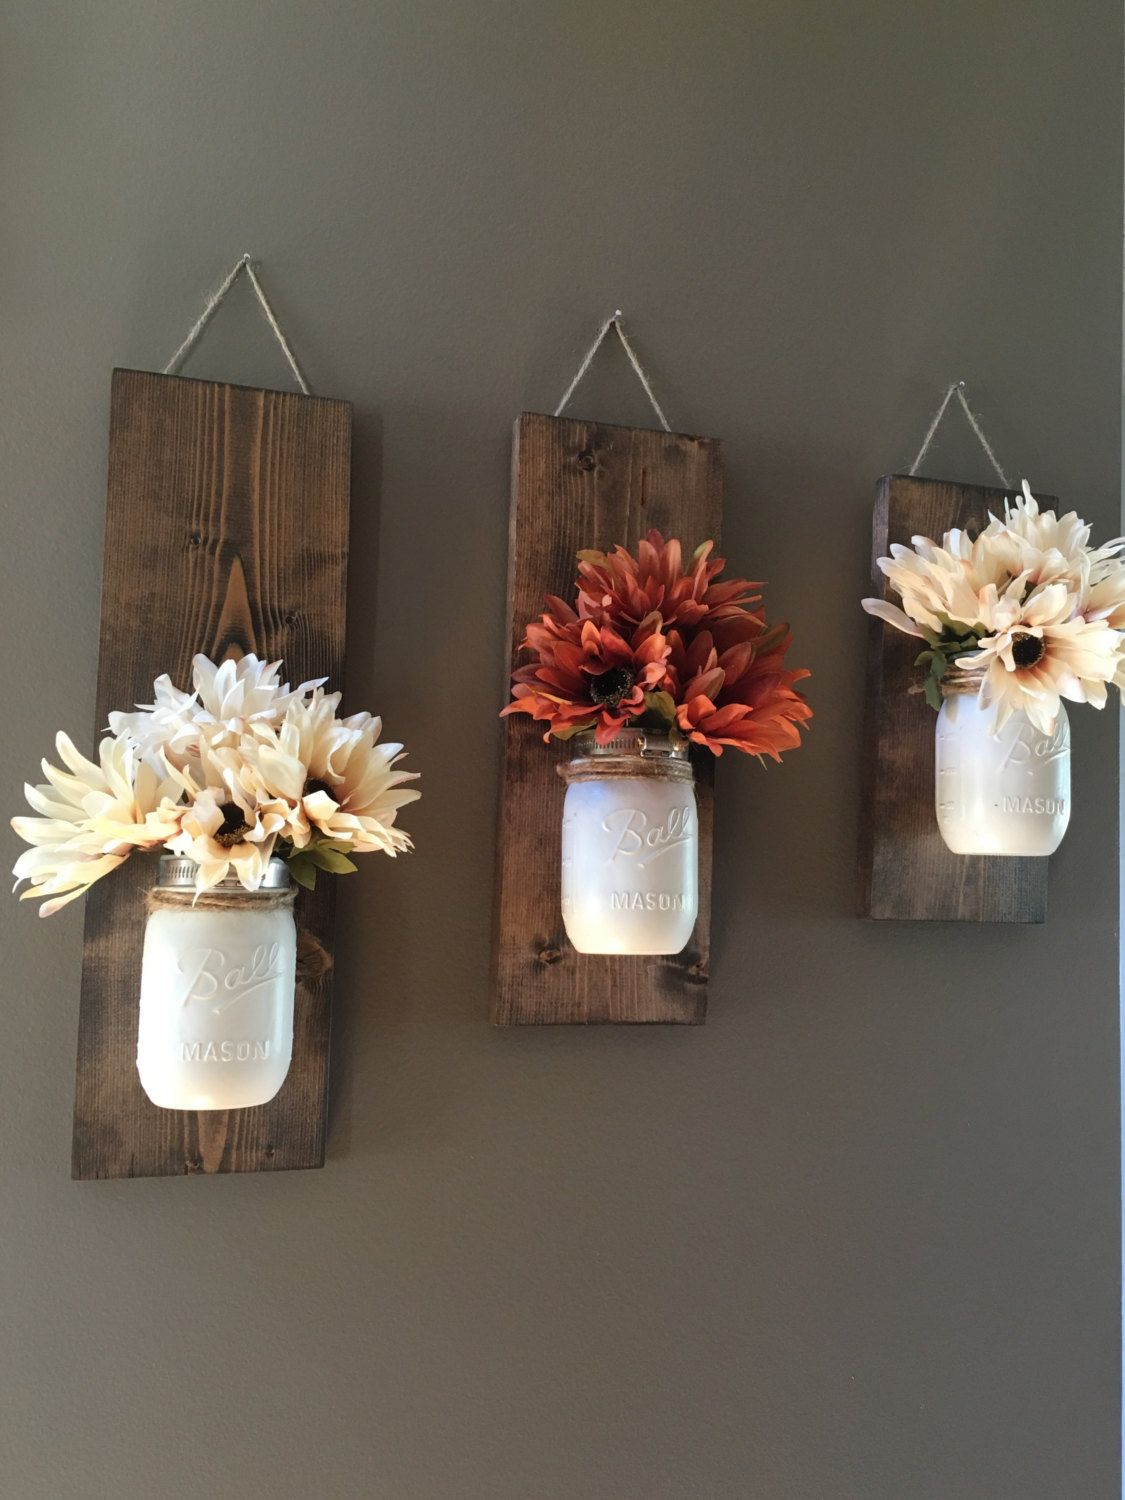 Decorative Wall Sconces For Flowers fall wall sconce | individual mason jar sconce | flower vase mason